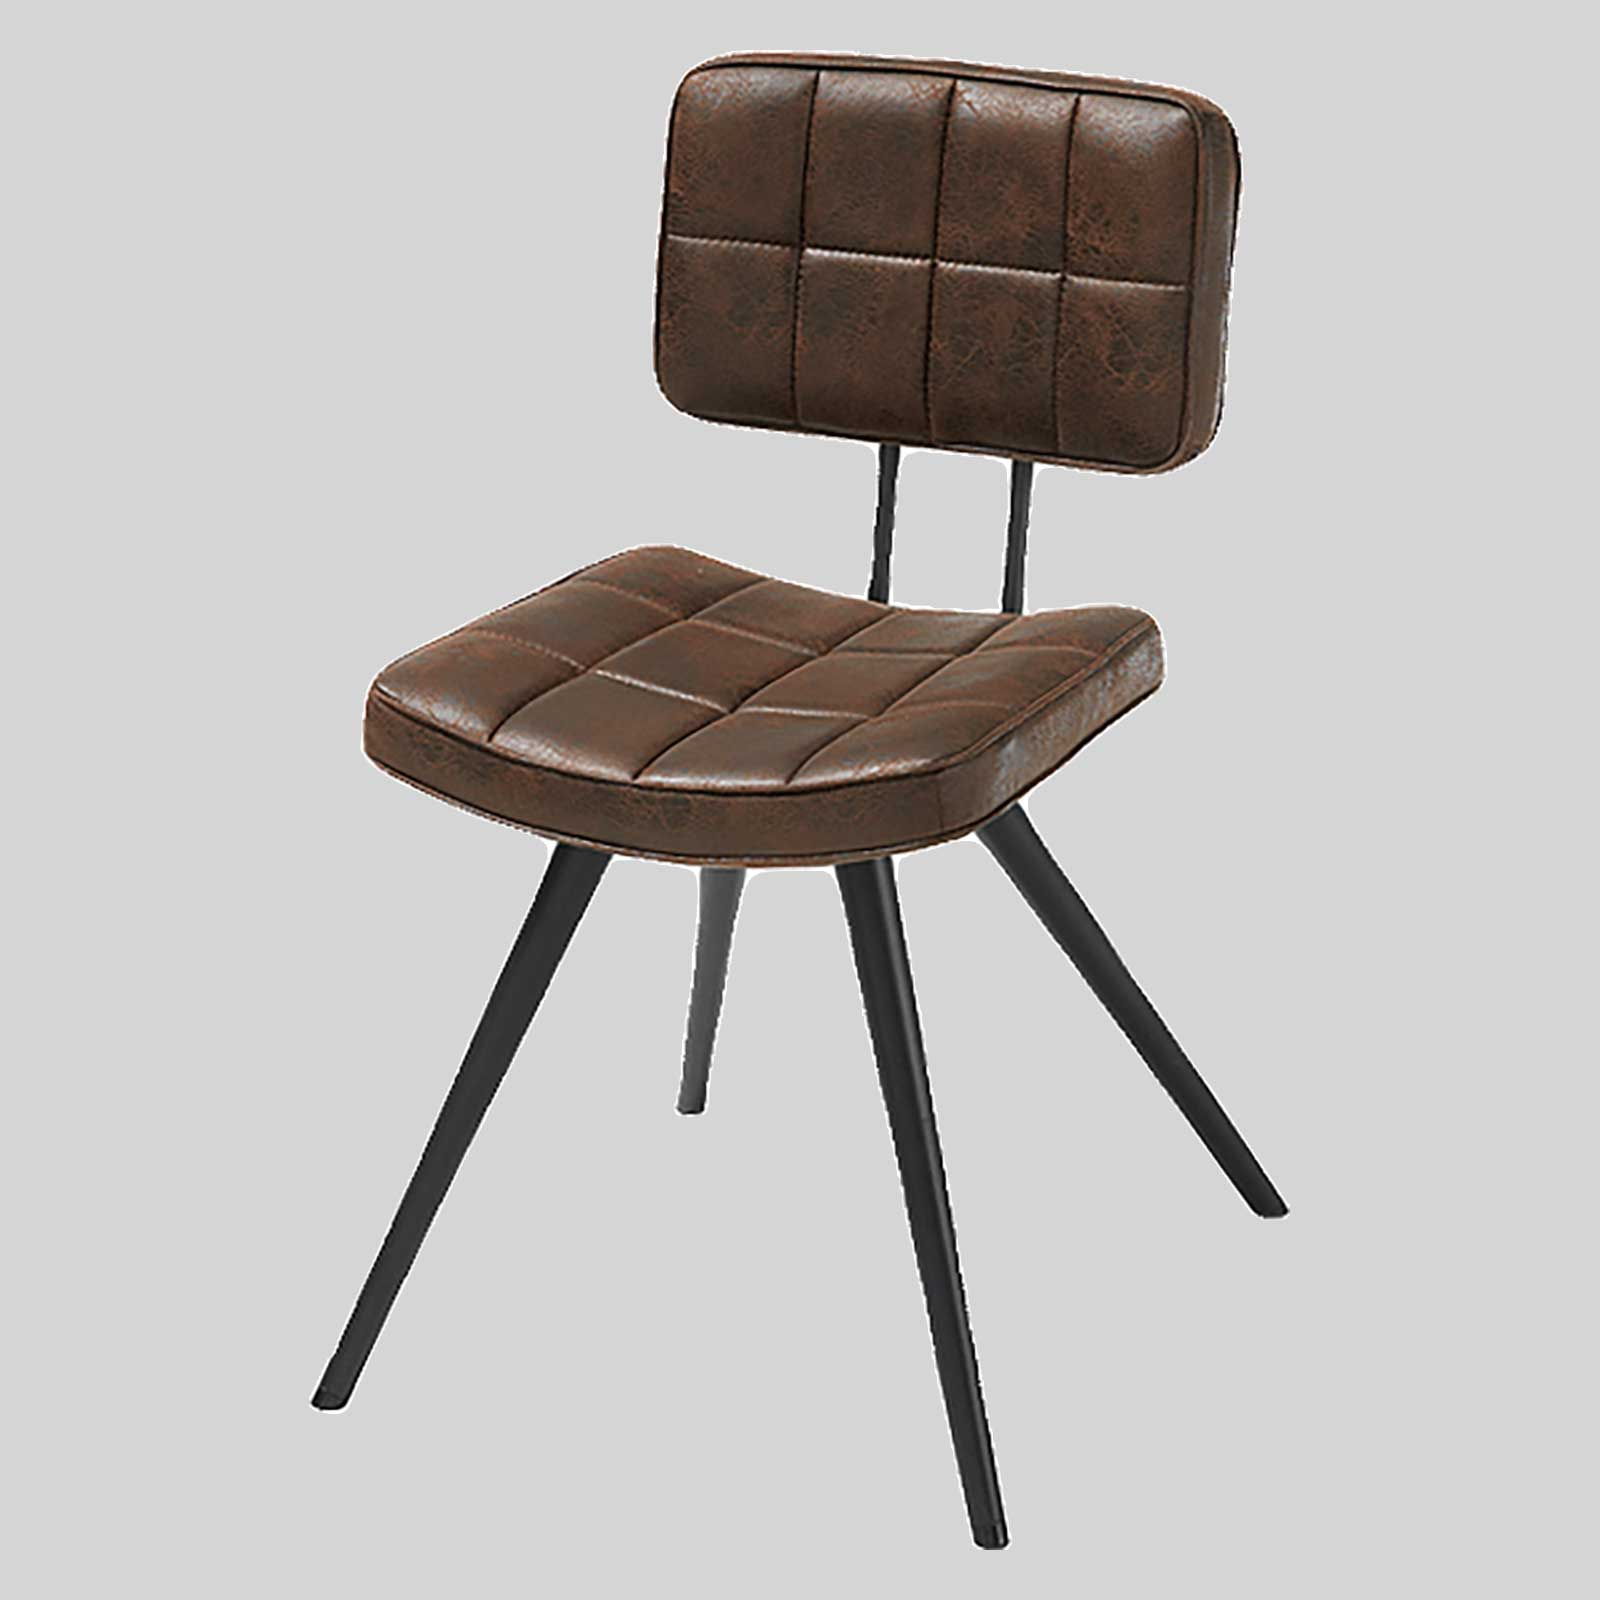 Remy vintage dining chair